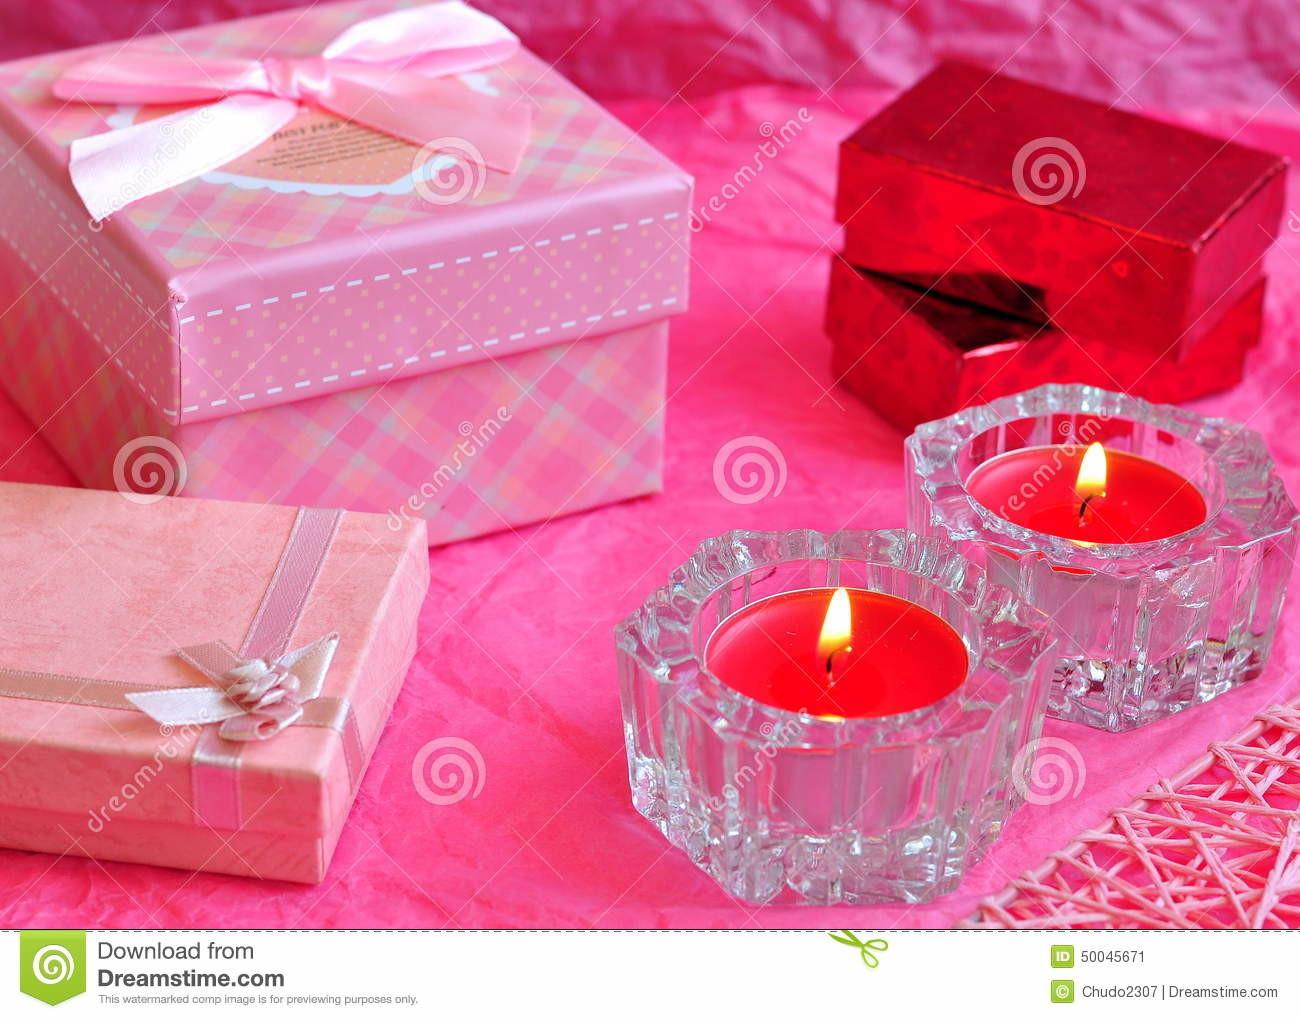 Valentines Day Card Concept Valentine Gift Candles